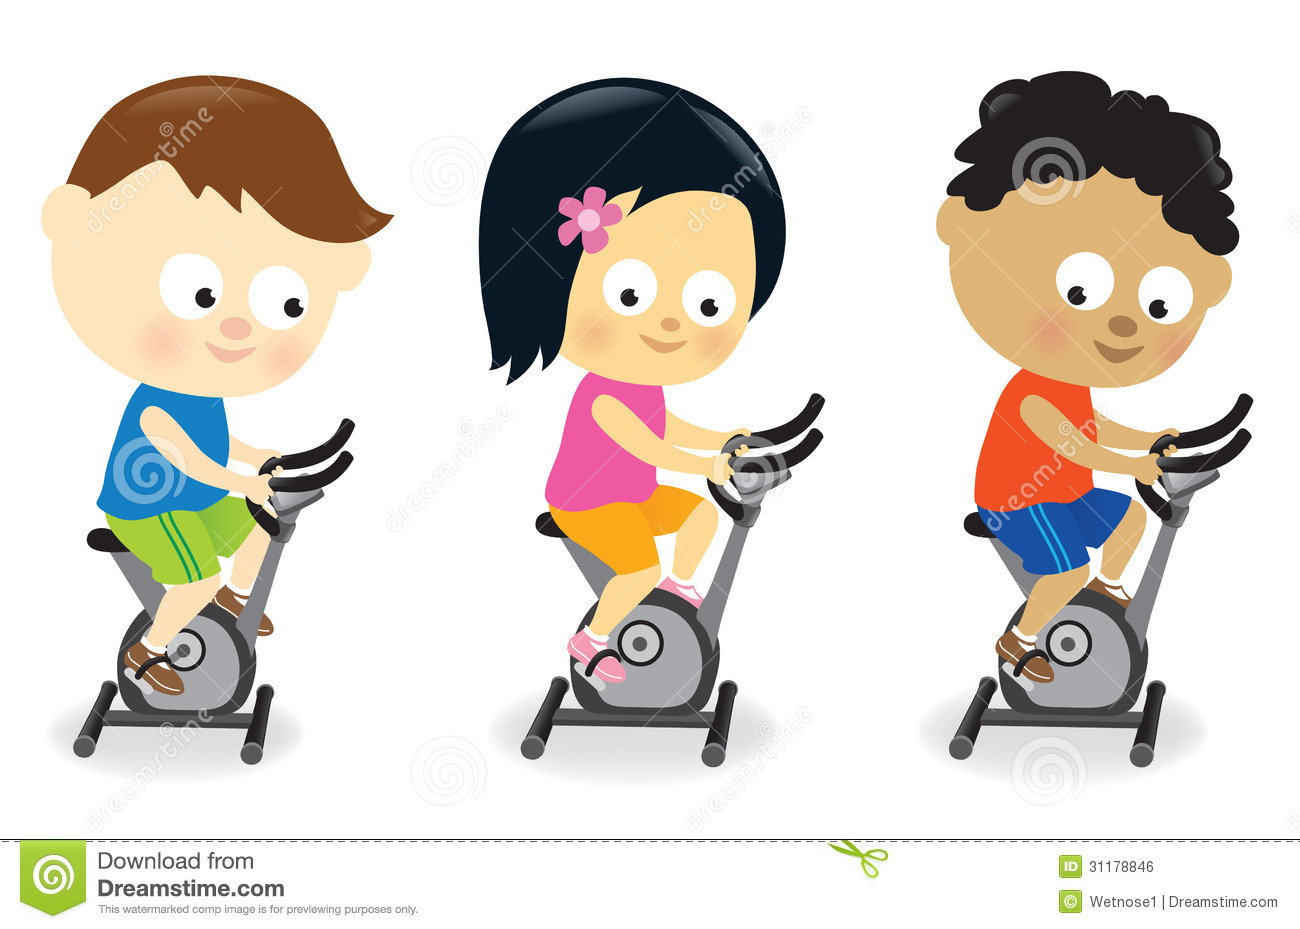 kids riding exercise bikes - Exercise Pictures For Kids